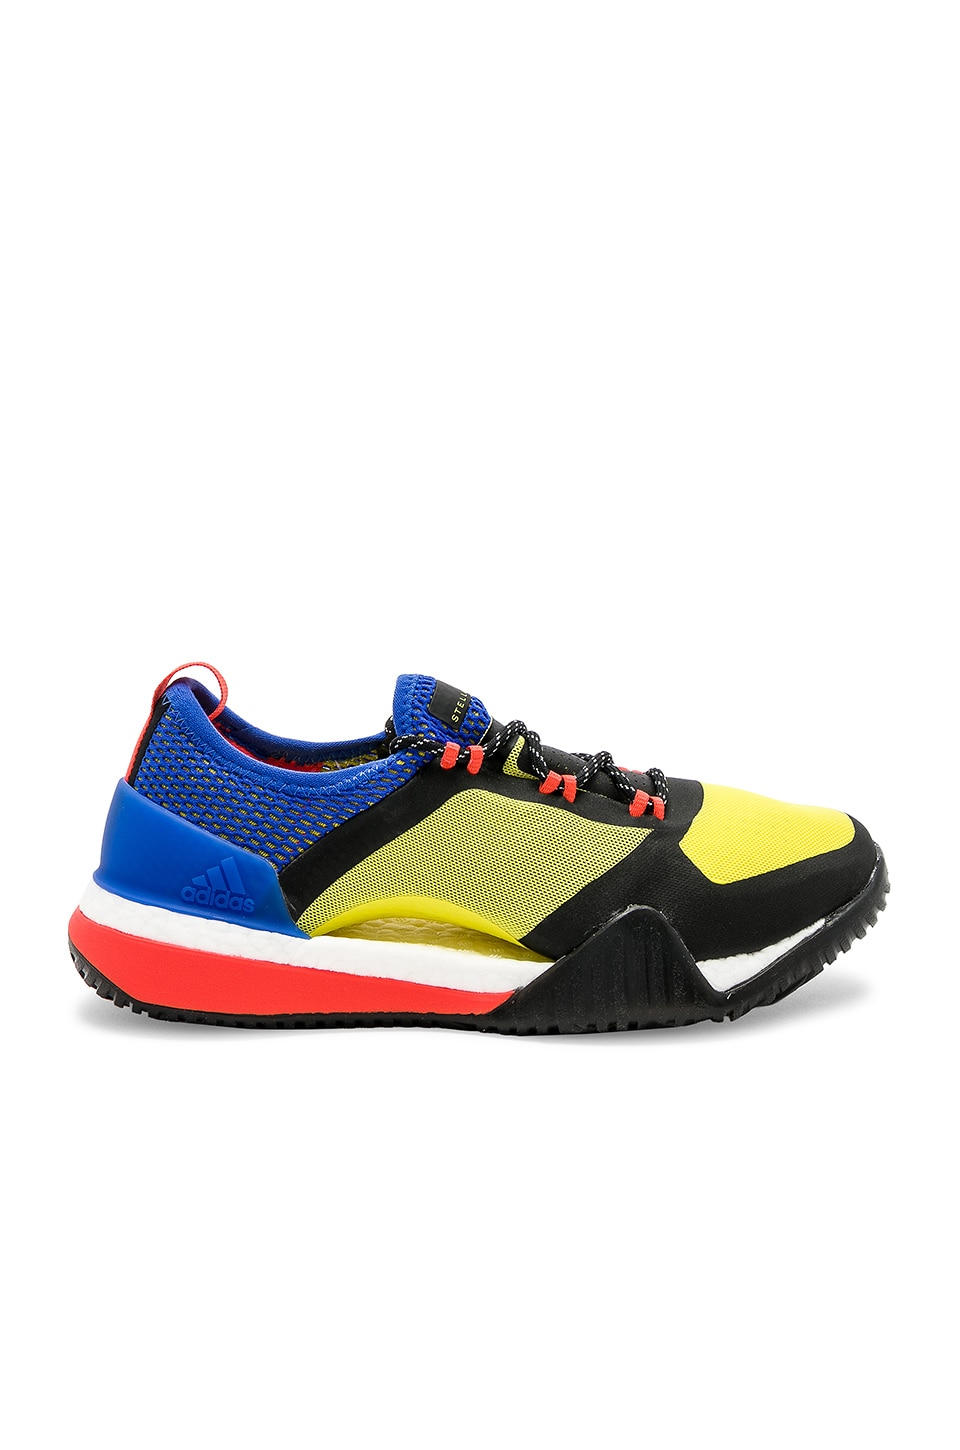 adidas by Stella McCartney Pure BOOST x TR 3.0 Sneaker in Bright Yellow & Hi Res Blue from